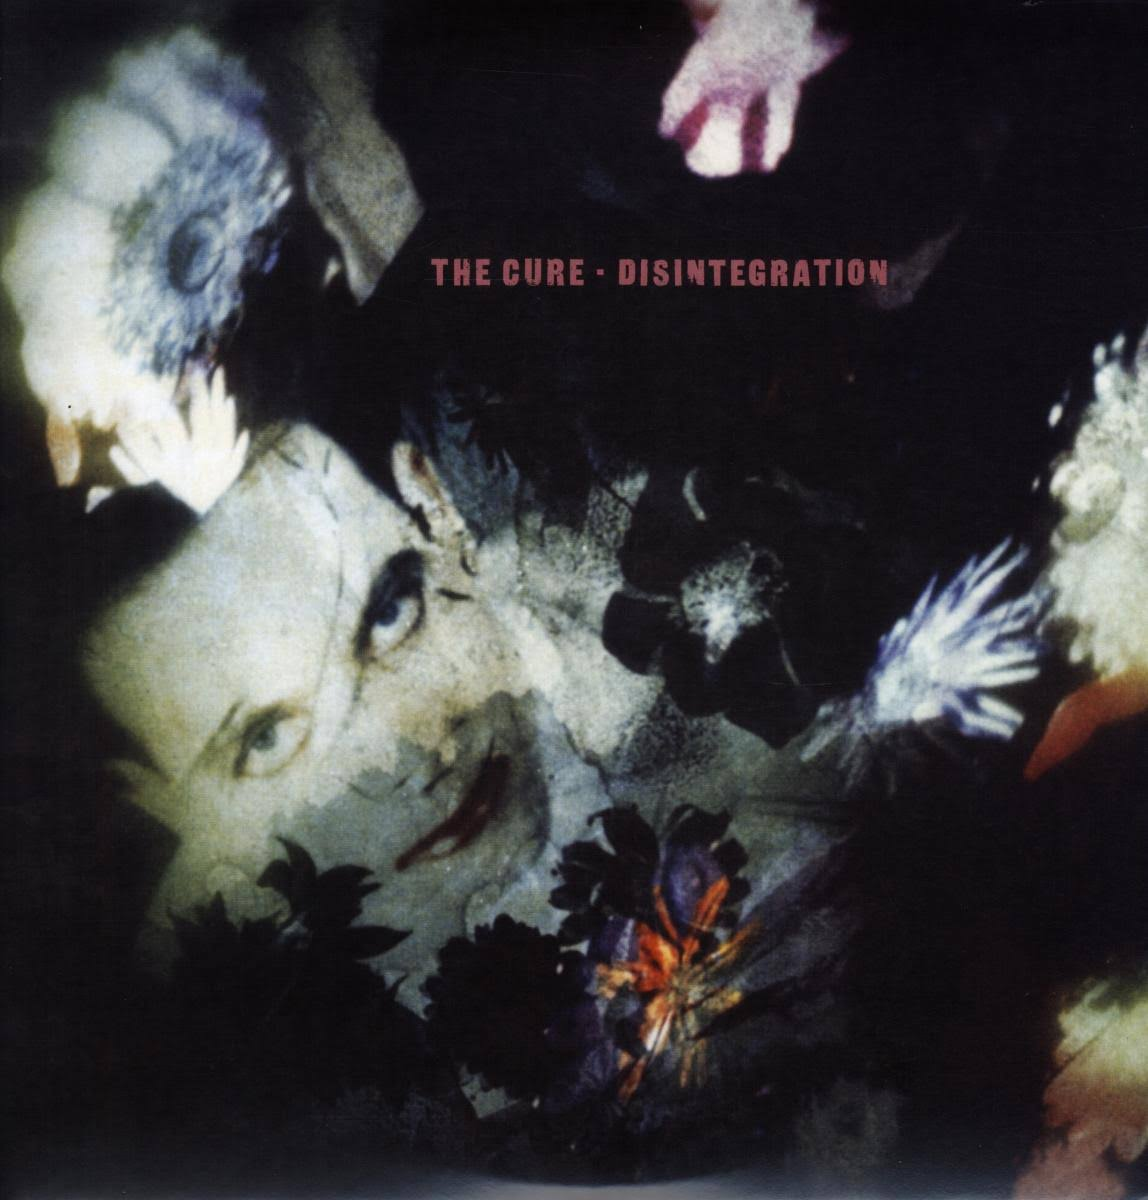 Disintengration - The Cure